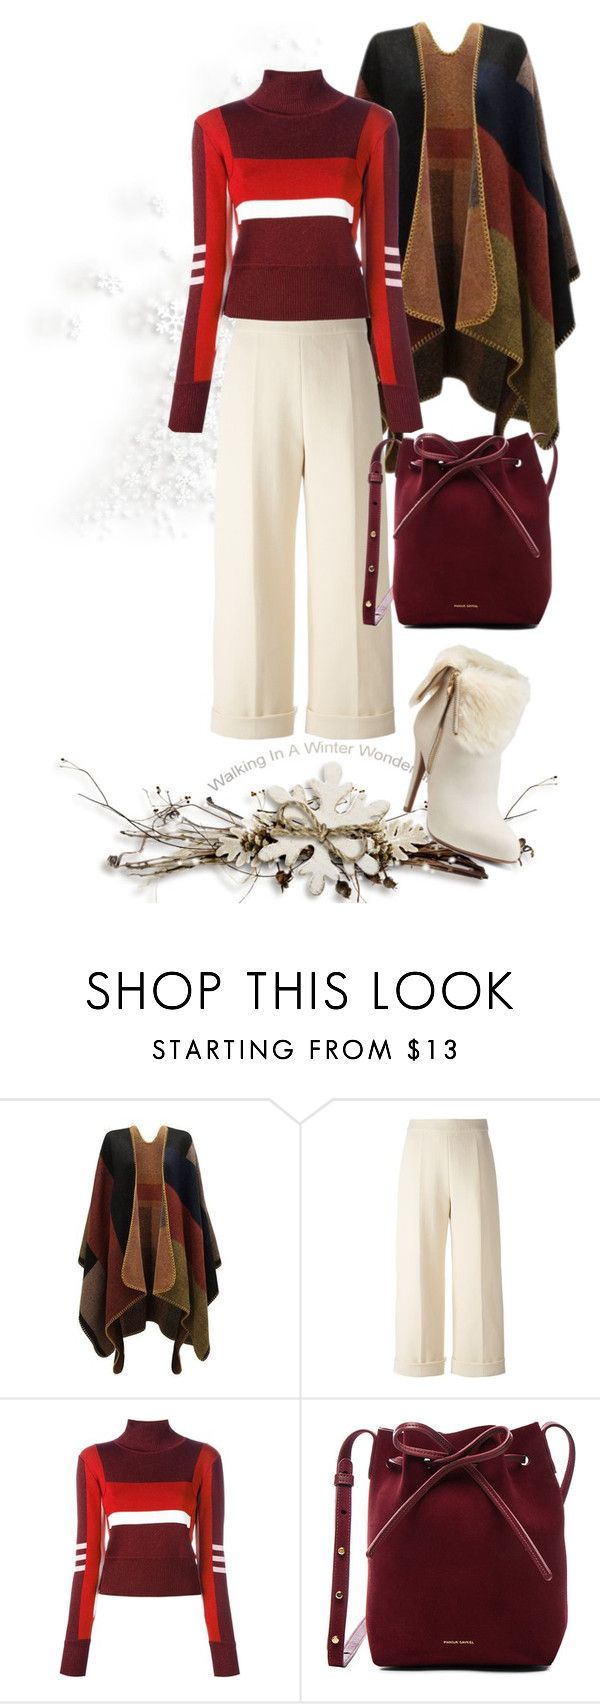 """""""falling into winter"""" by art-gives-me-life ❤ liked on Polyvore featuring Delpozo, Emilio Pucci, Mansur Gavriel, Jennifer Lopez and contestentry"""